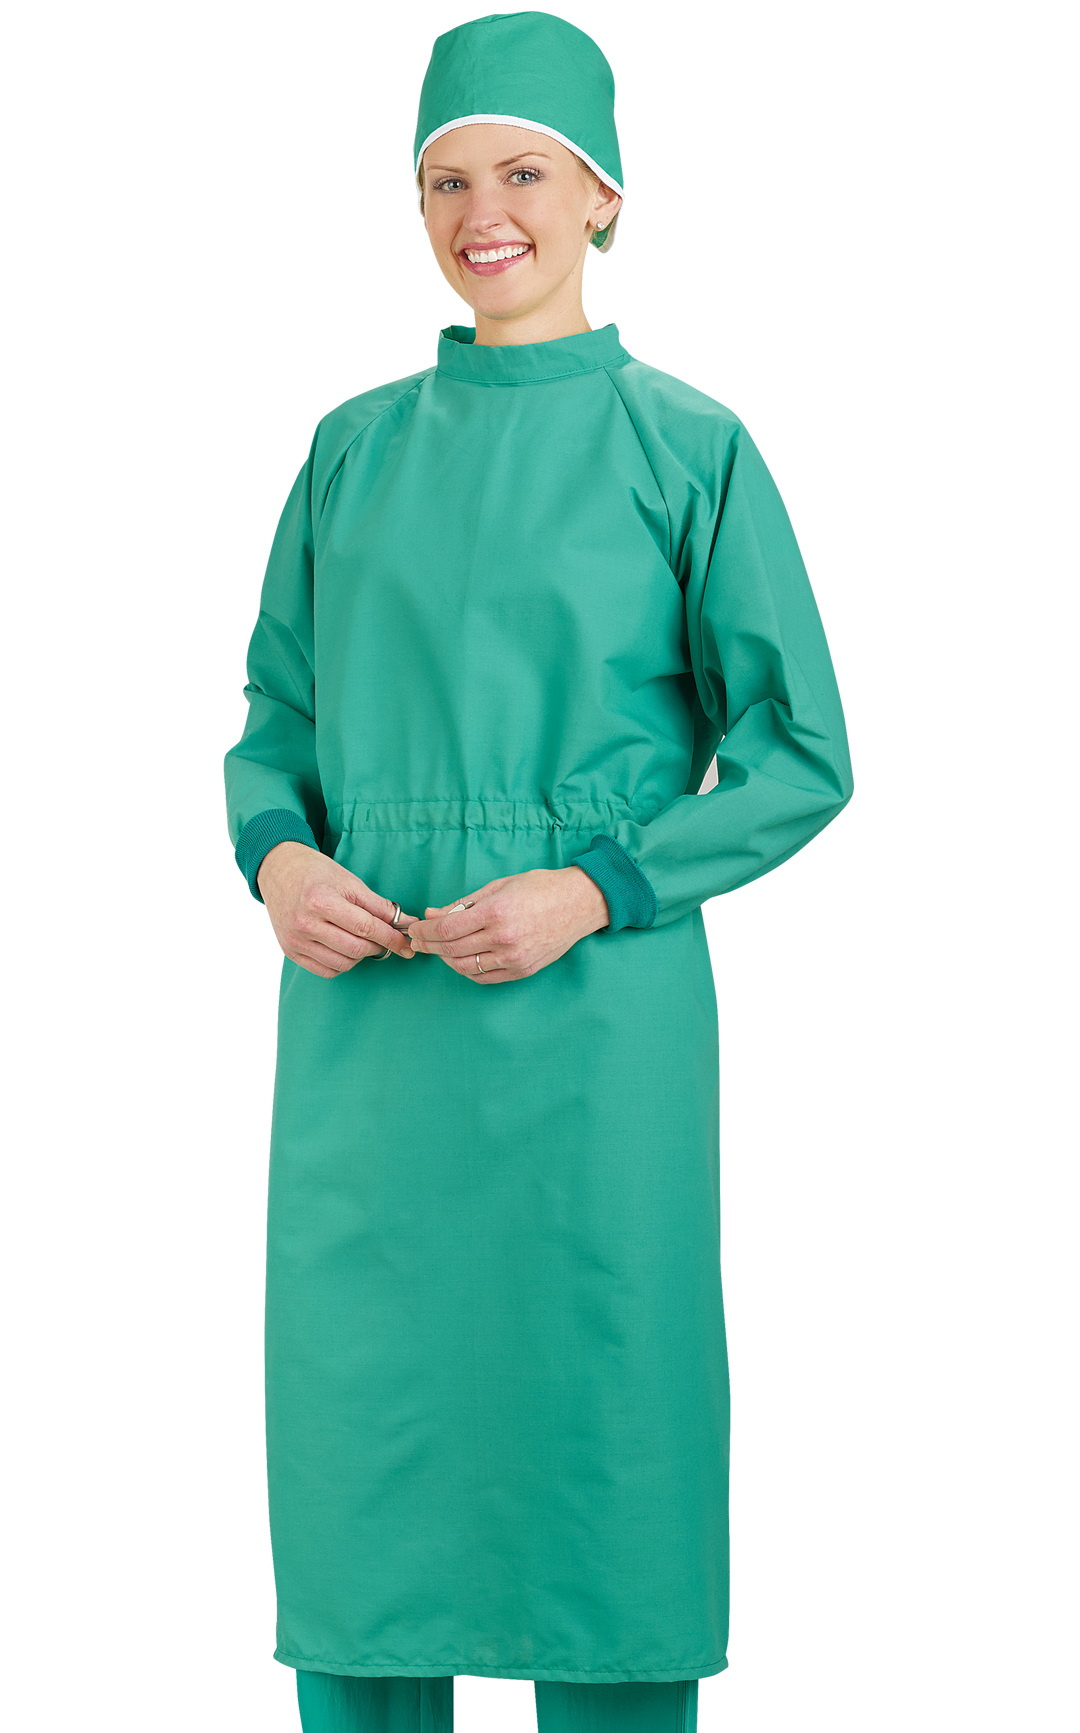 Surgical Wear from Veterinary Apparel Company | Veterinary Apparel